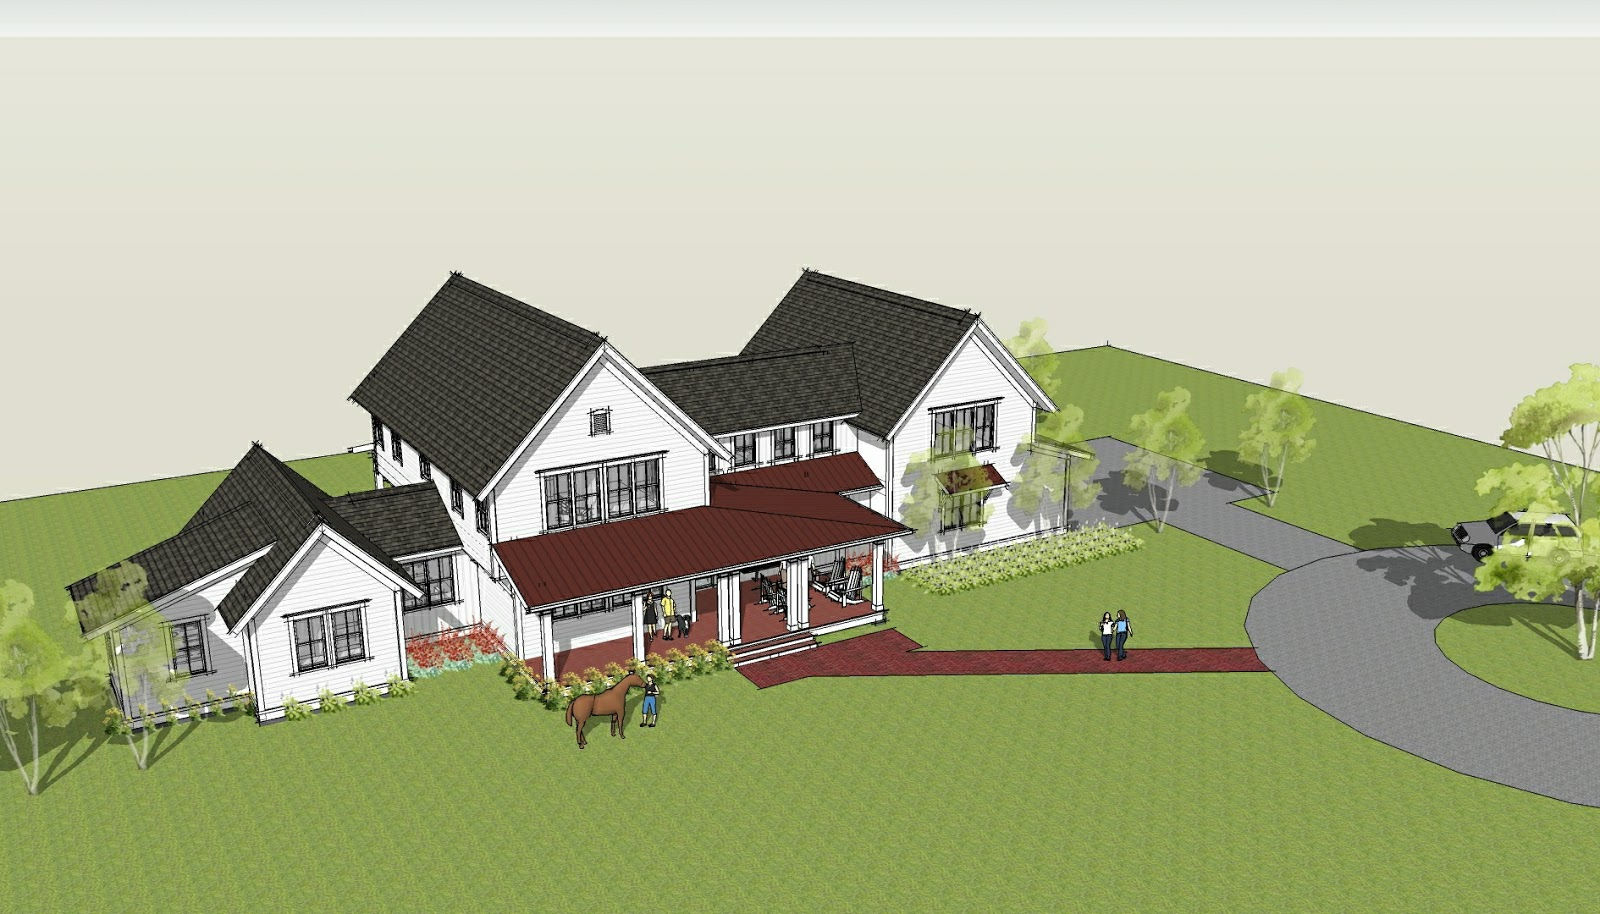 Ron brenner architects new modern farmhouse design completed for Modern farmhouse floor plans